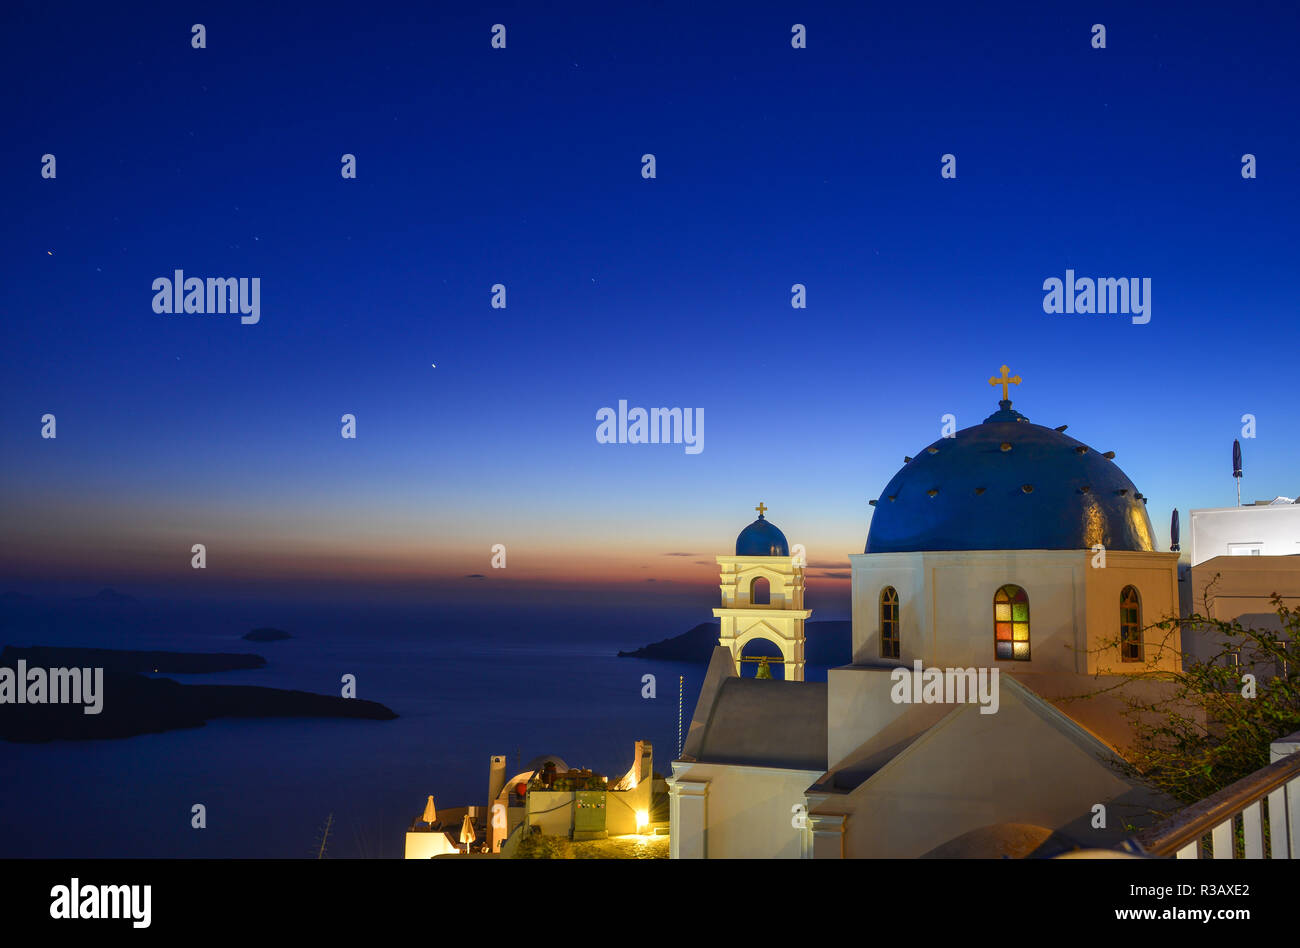 Catholic Church with seascape at twilight in Santorini, Greece. - Stock Image